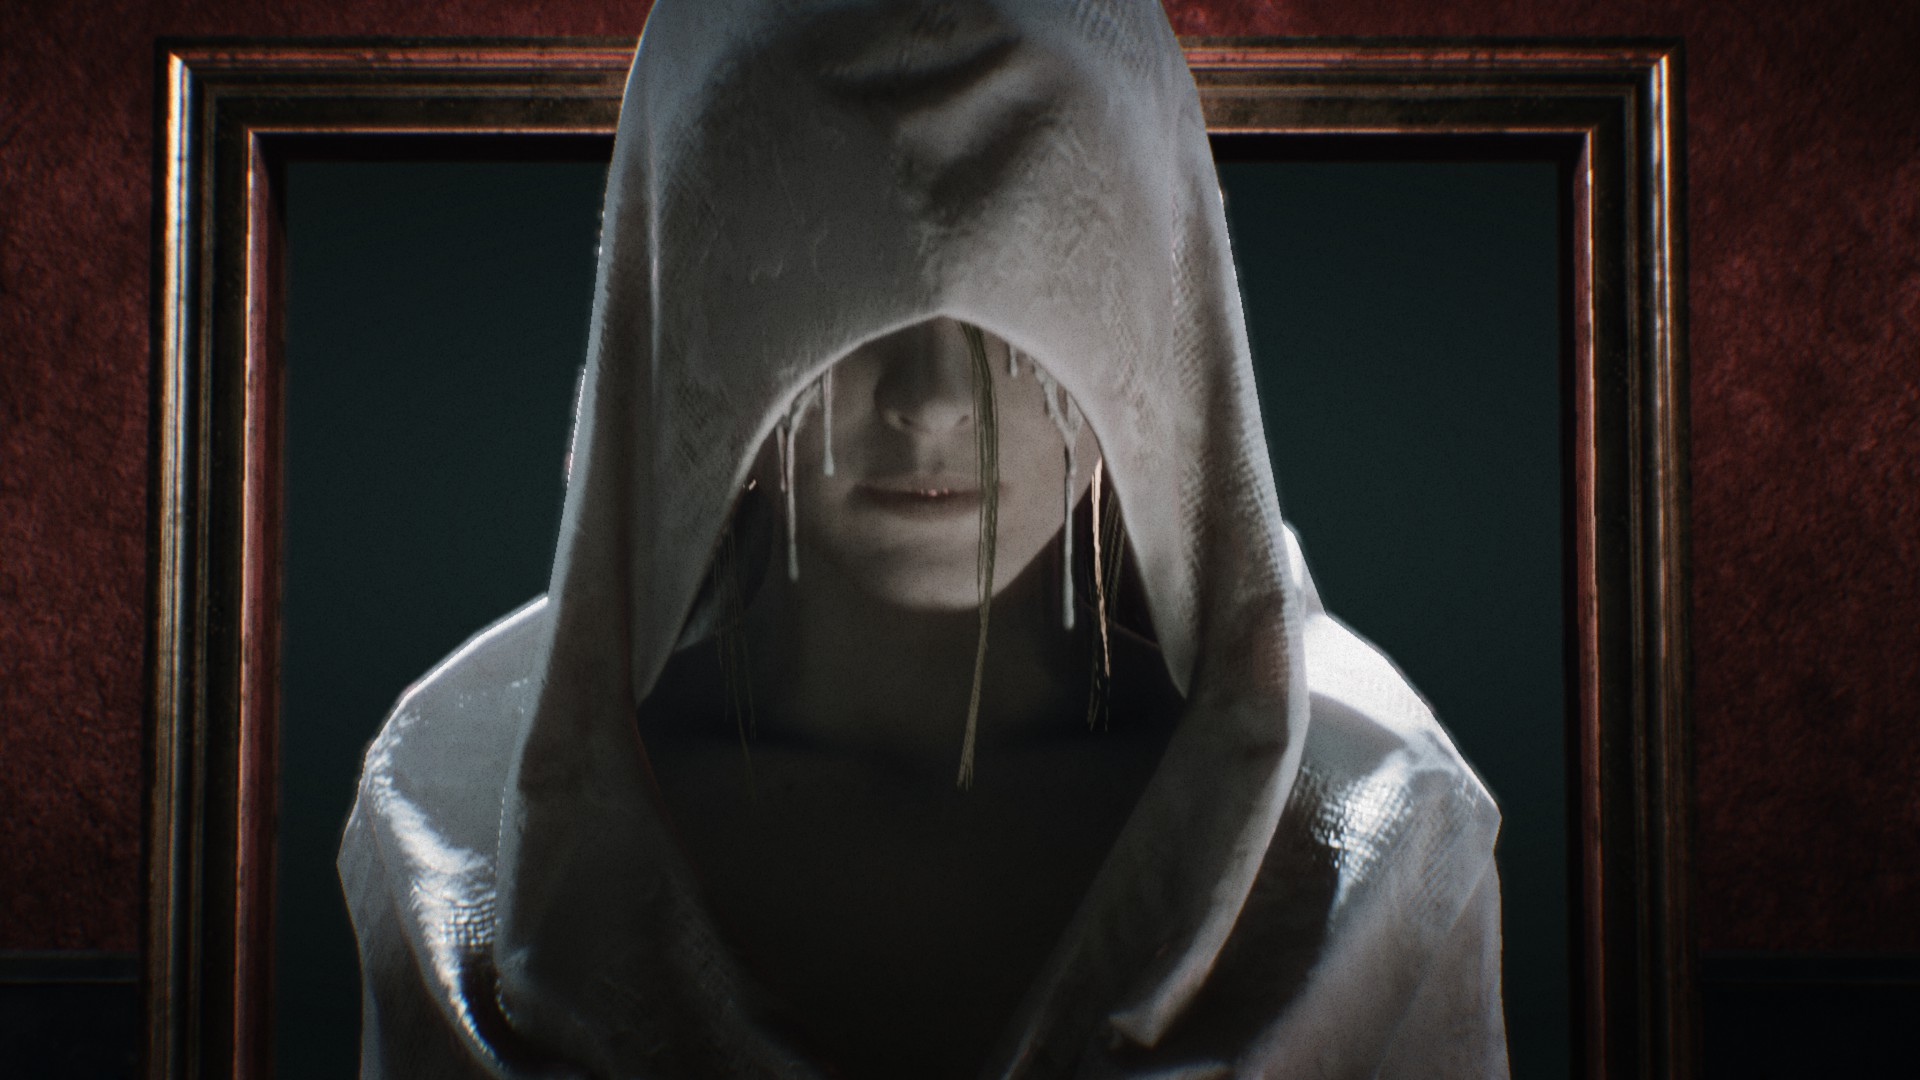 20181124170348_1.jpg - Evil Within 2, the